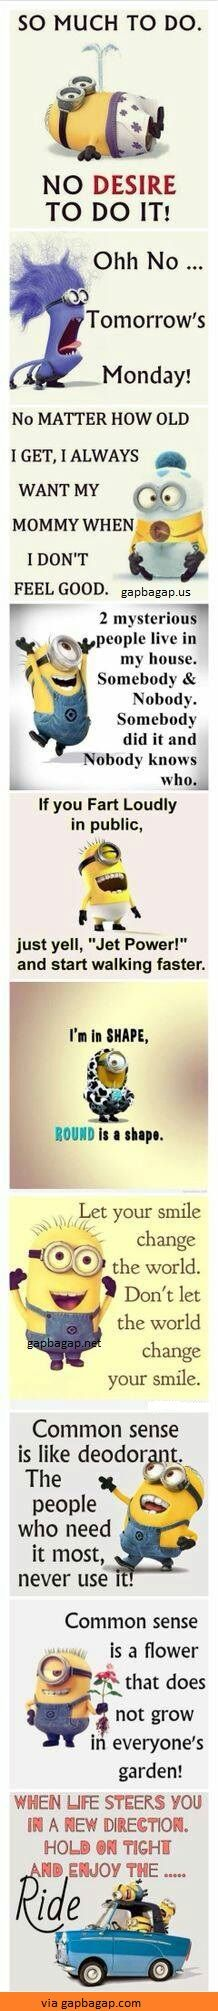 Top 10 Funny Memes By The #Minions